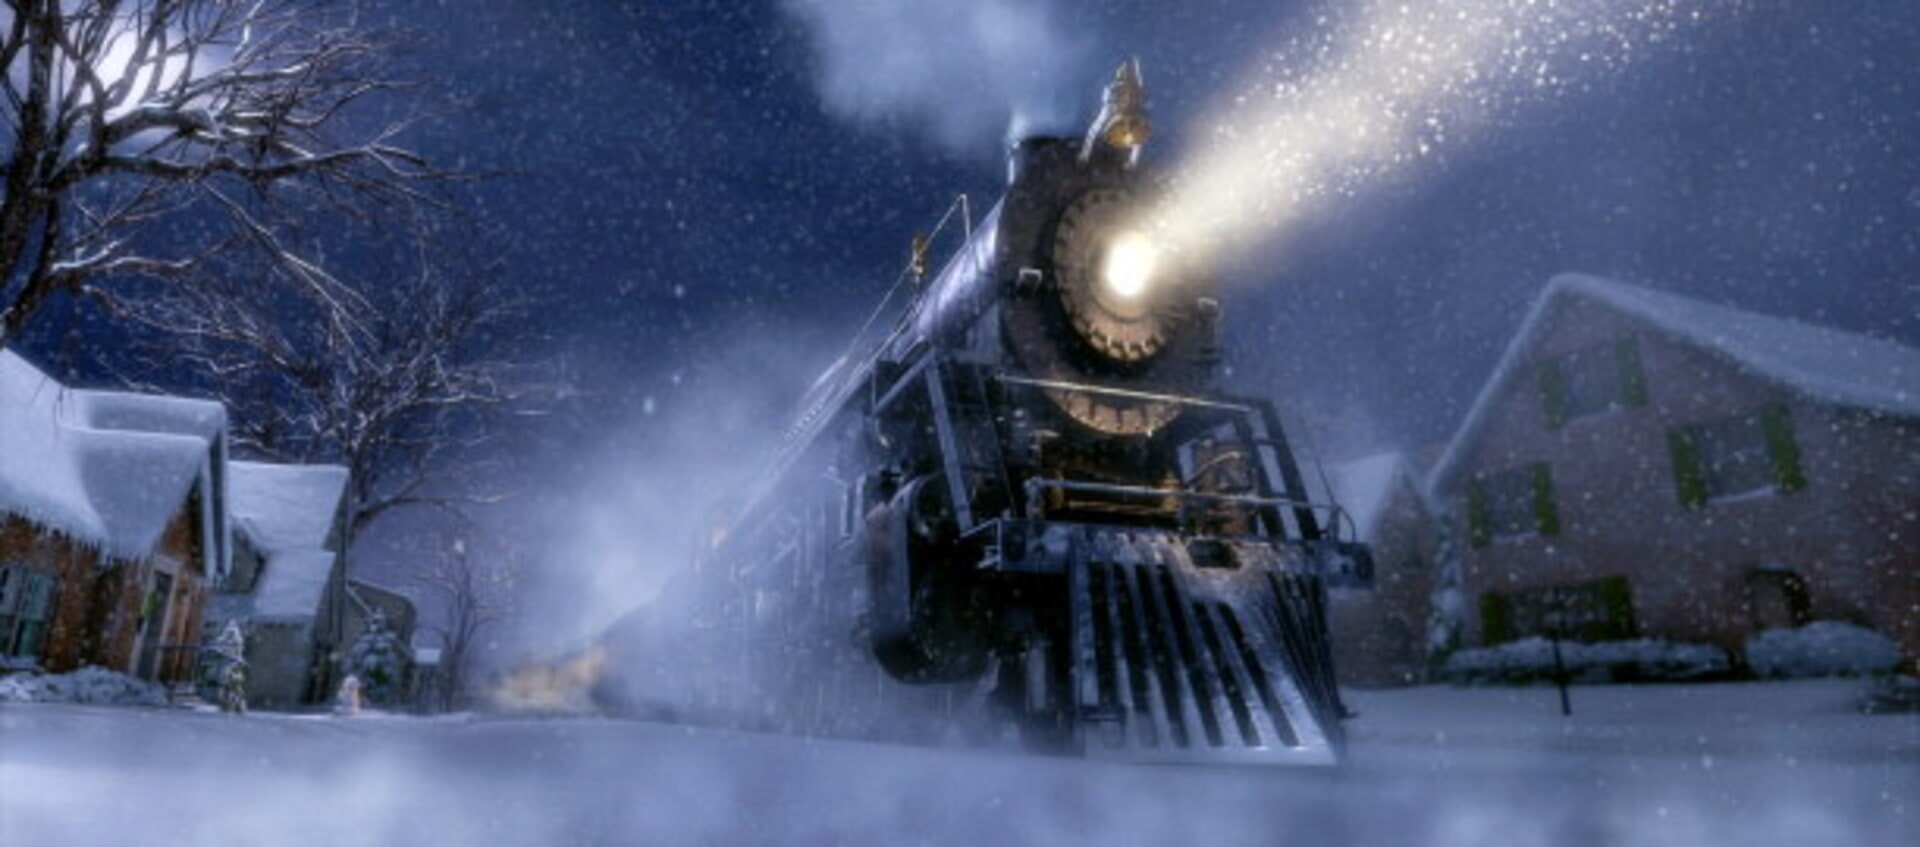 The Polar Express - Image 17